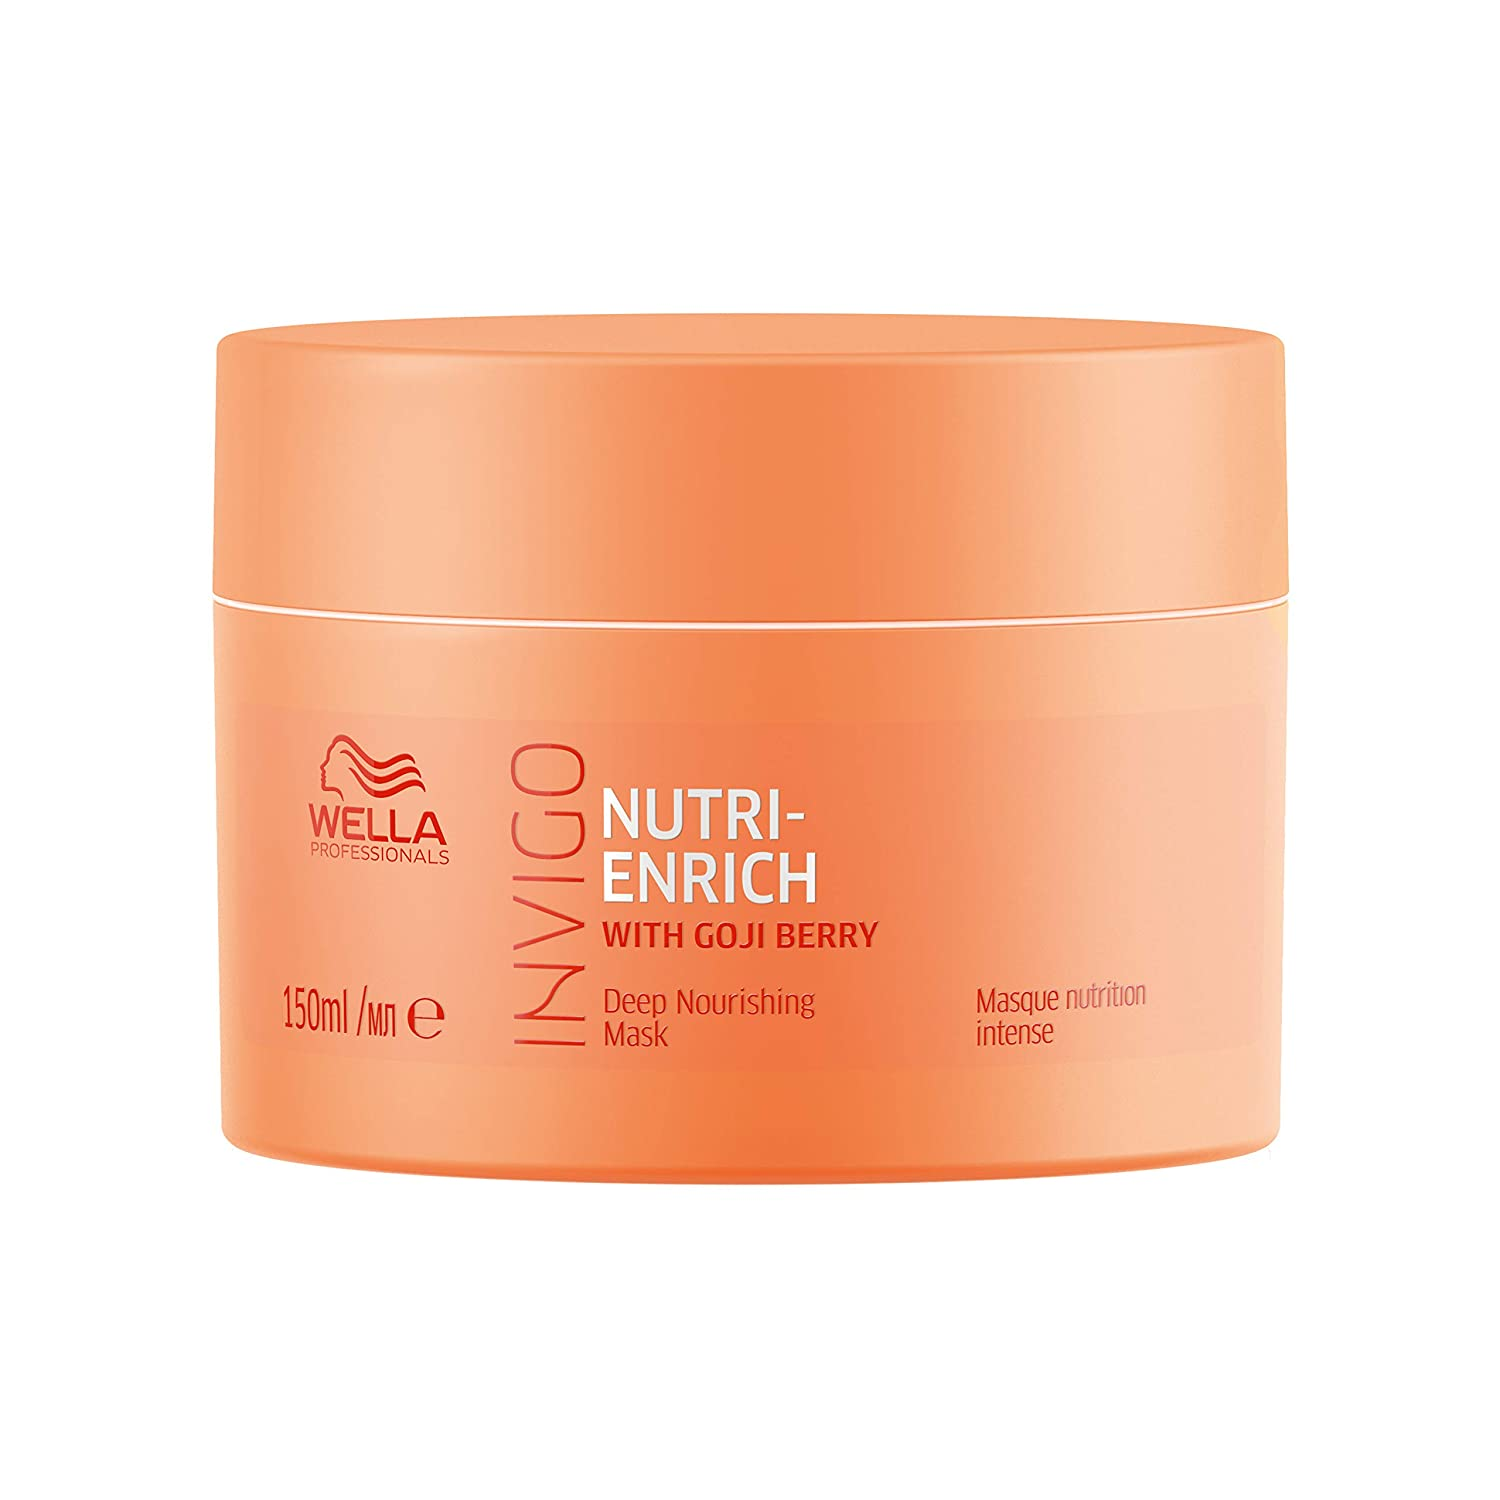 Wella Professionals Deep Nourishing Hair Mask : Best hair spa for dry frizzy hair